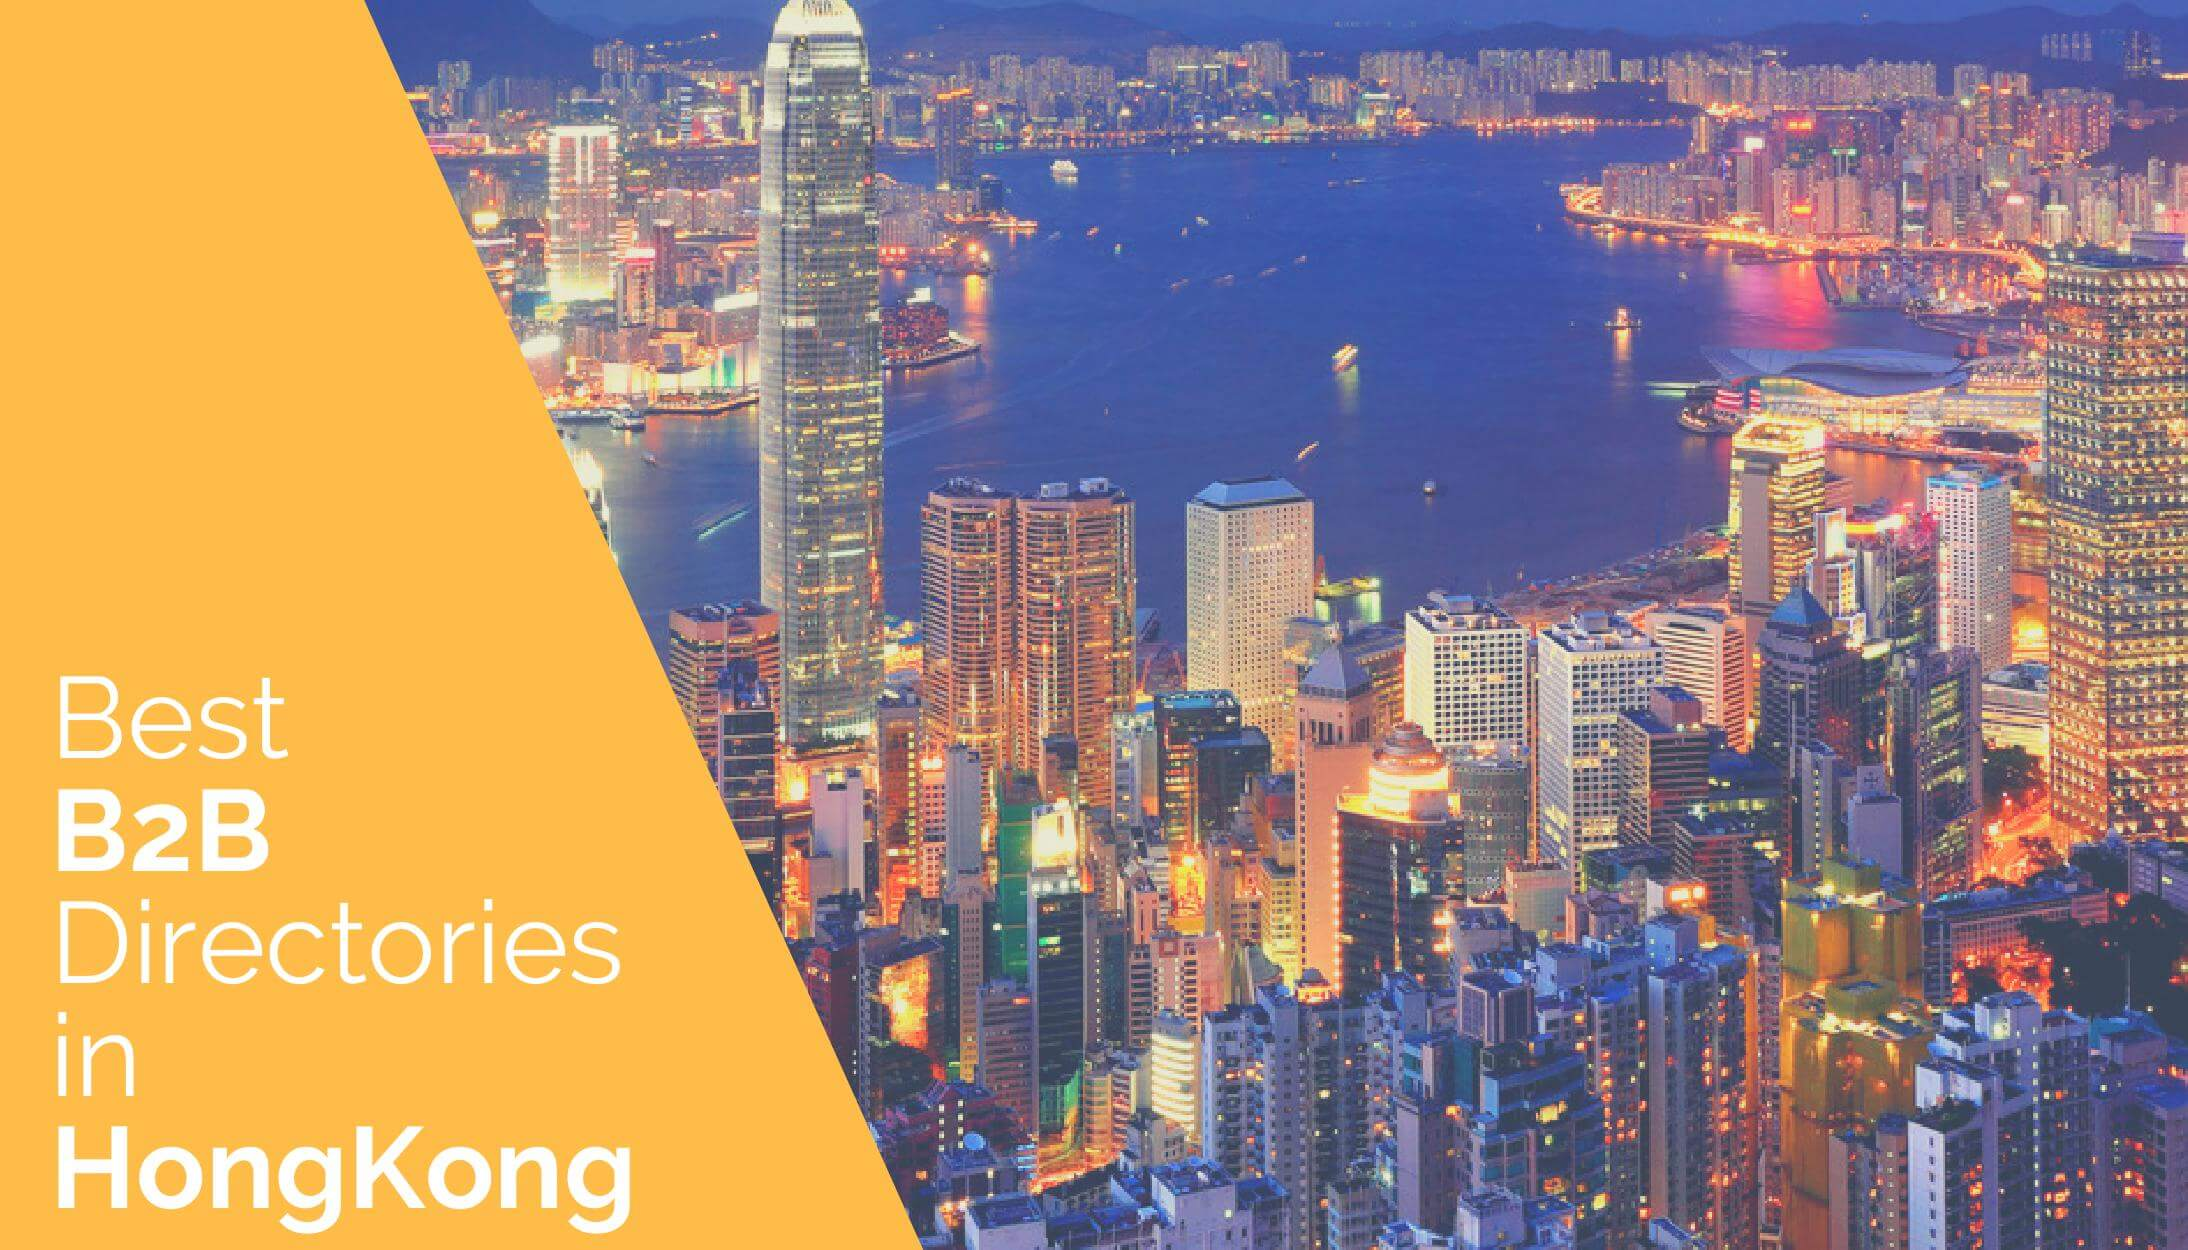 B2B marketplaces in Hongkong